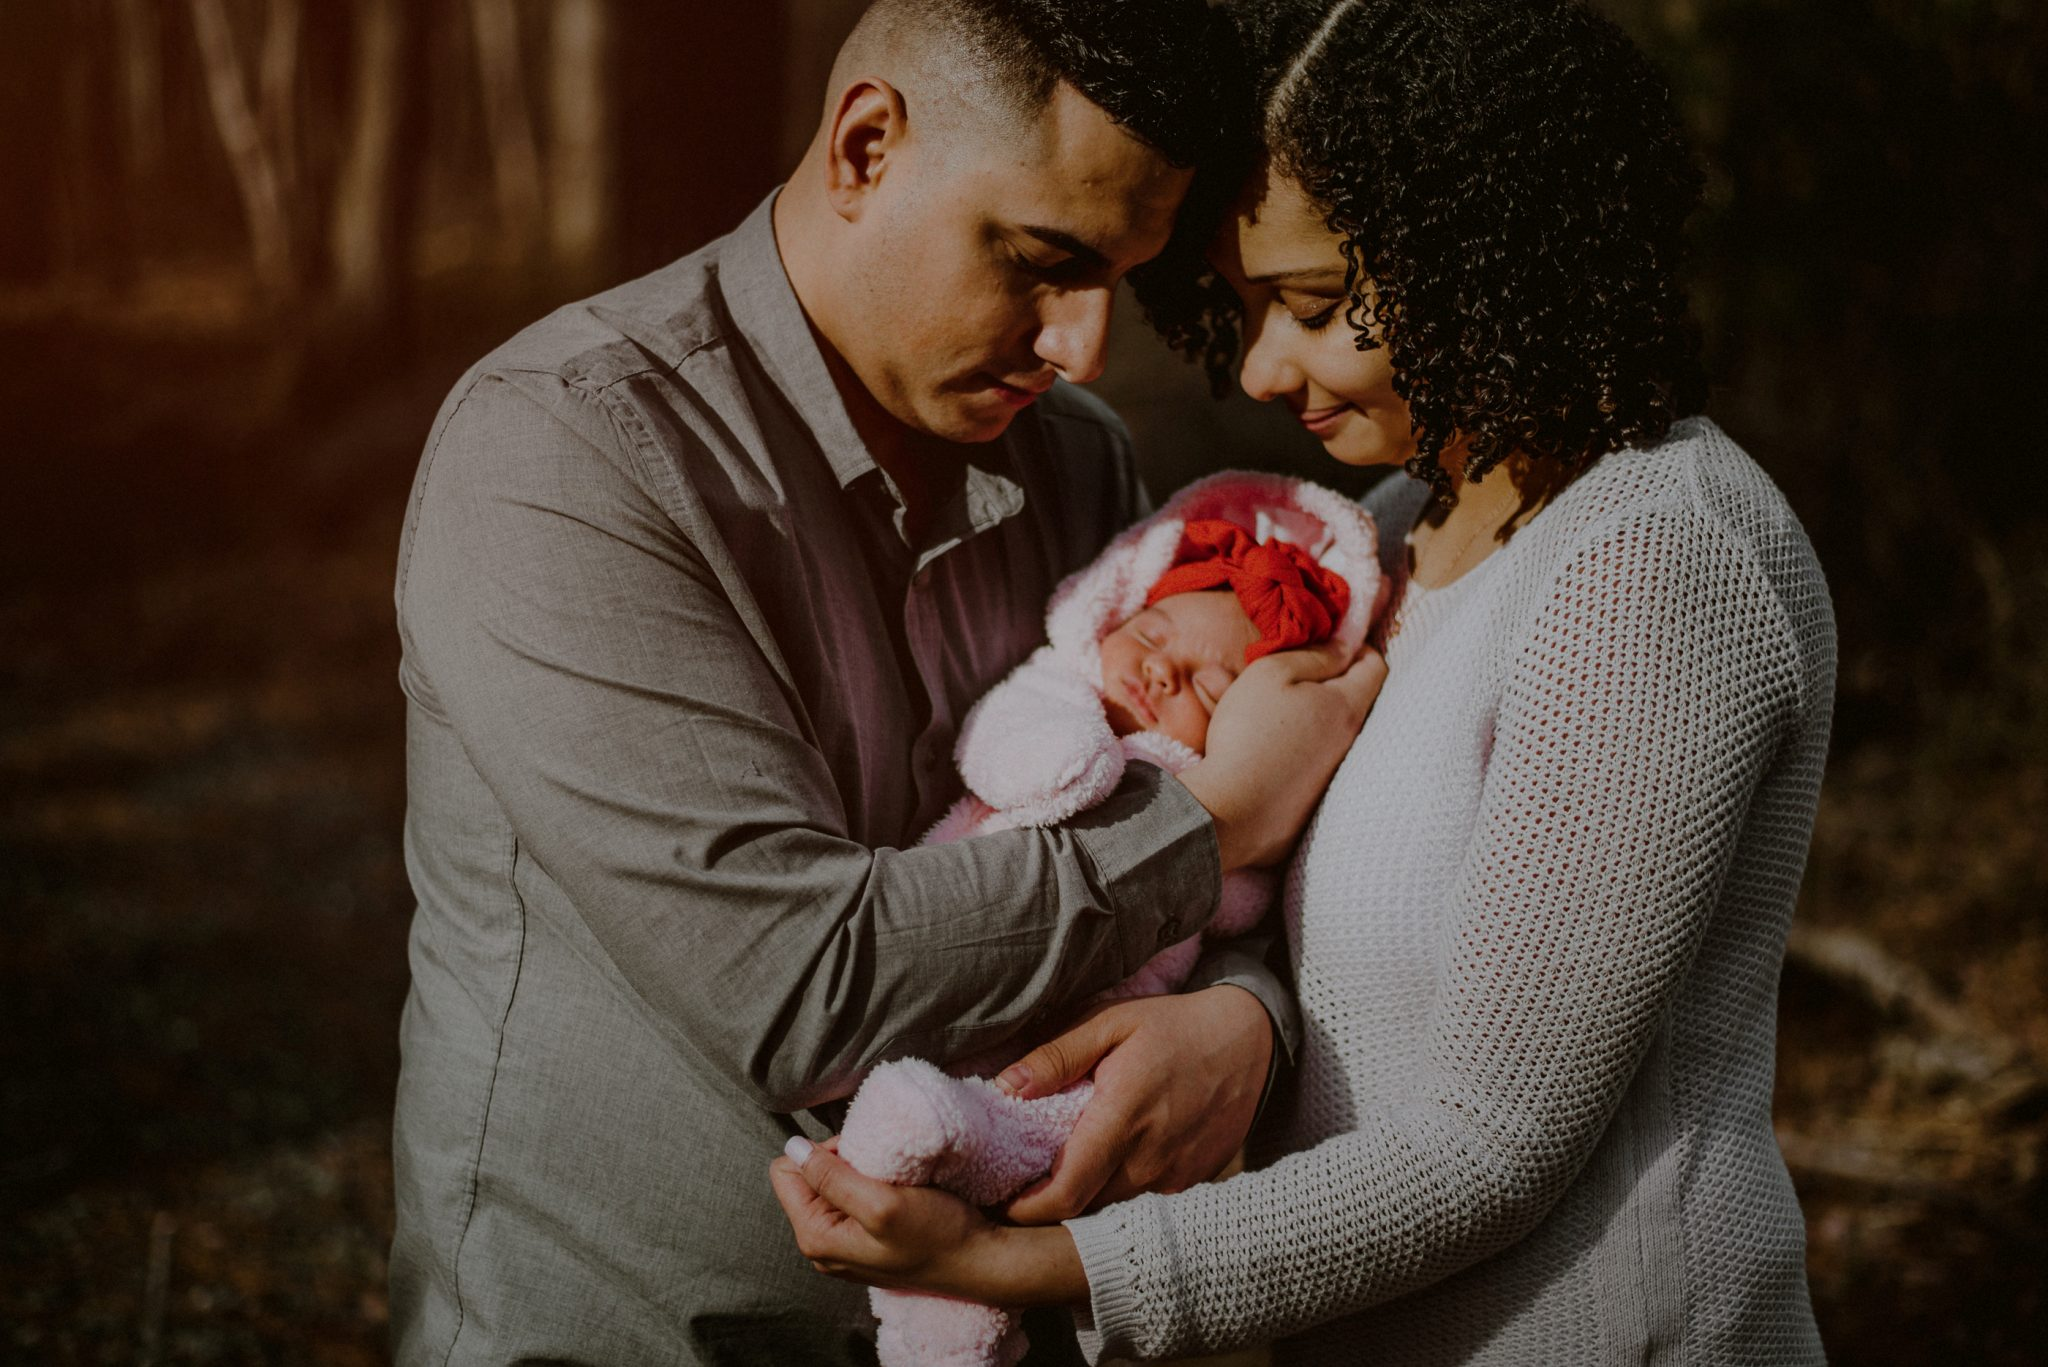 family portrait in the woods with newborn baby